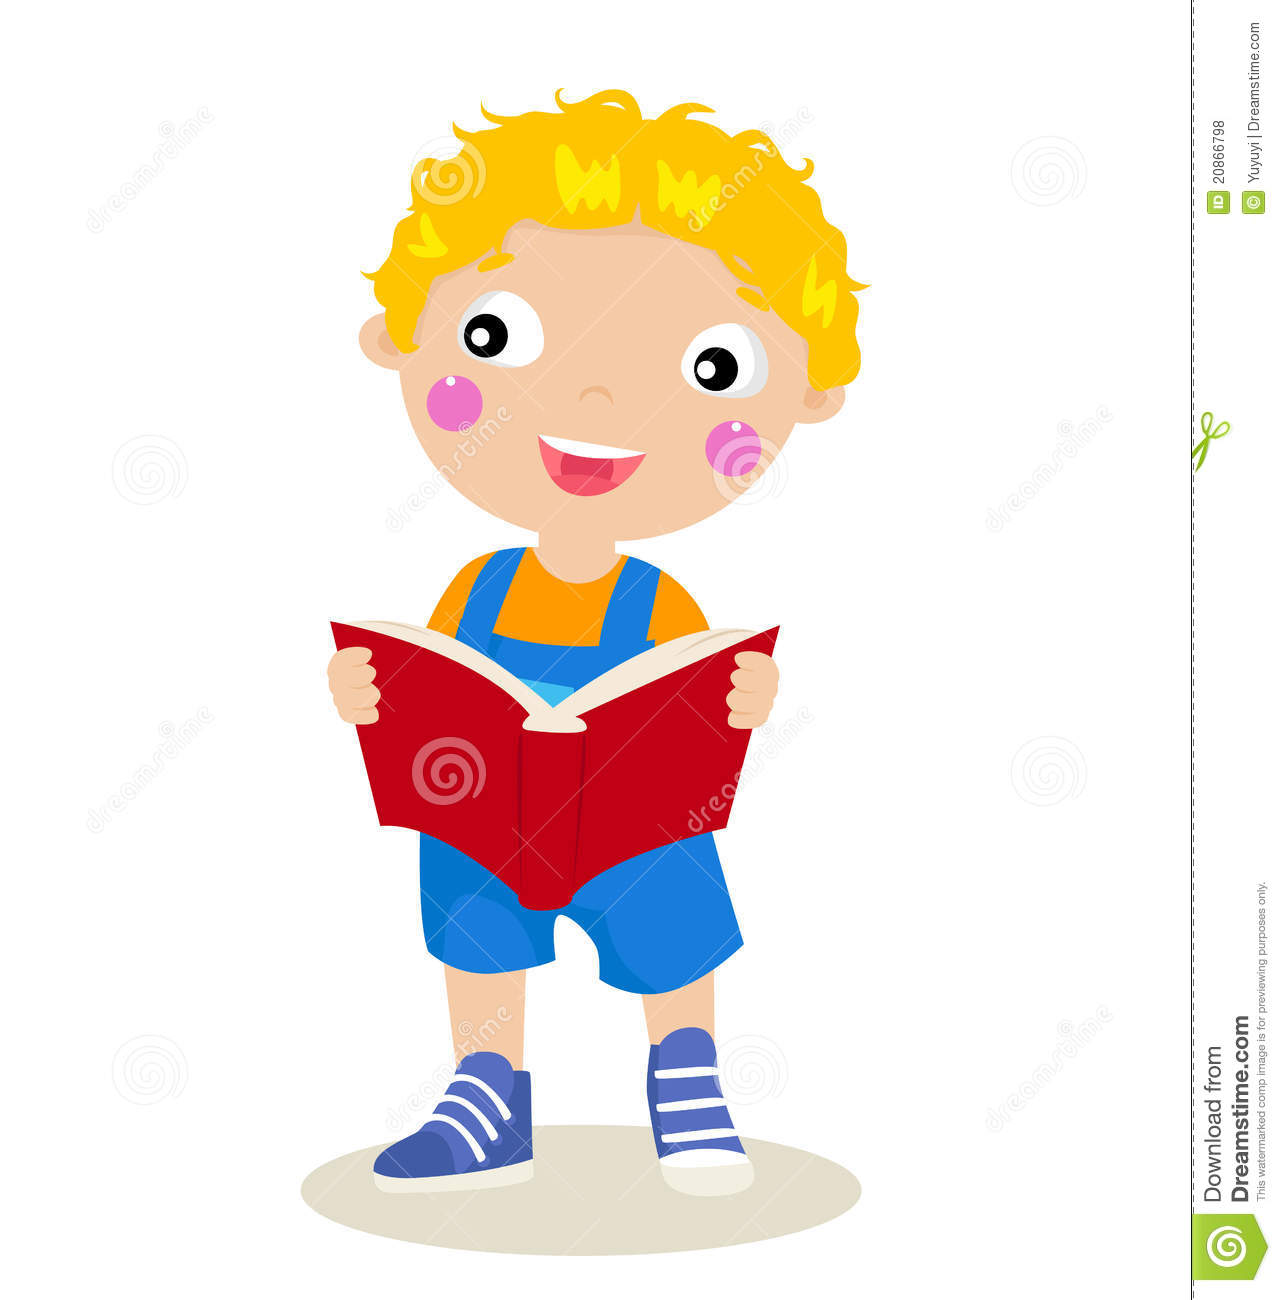 Child reading a book royalty free stock photos image for Konzentrationsschw che kind